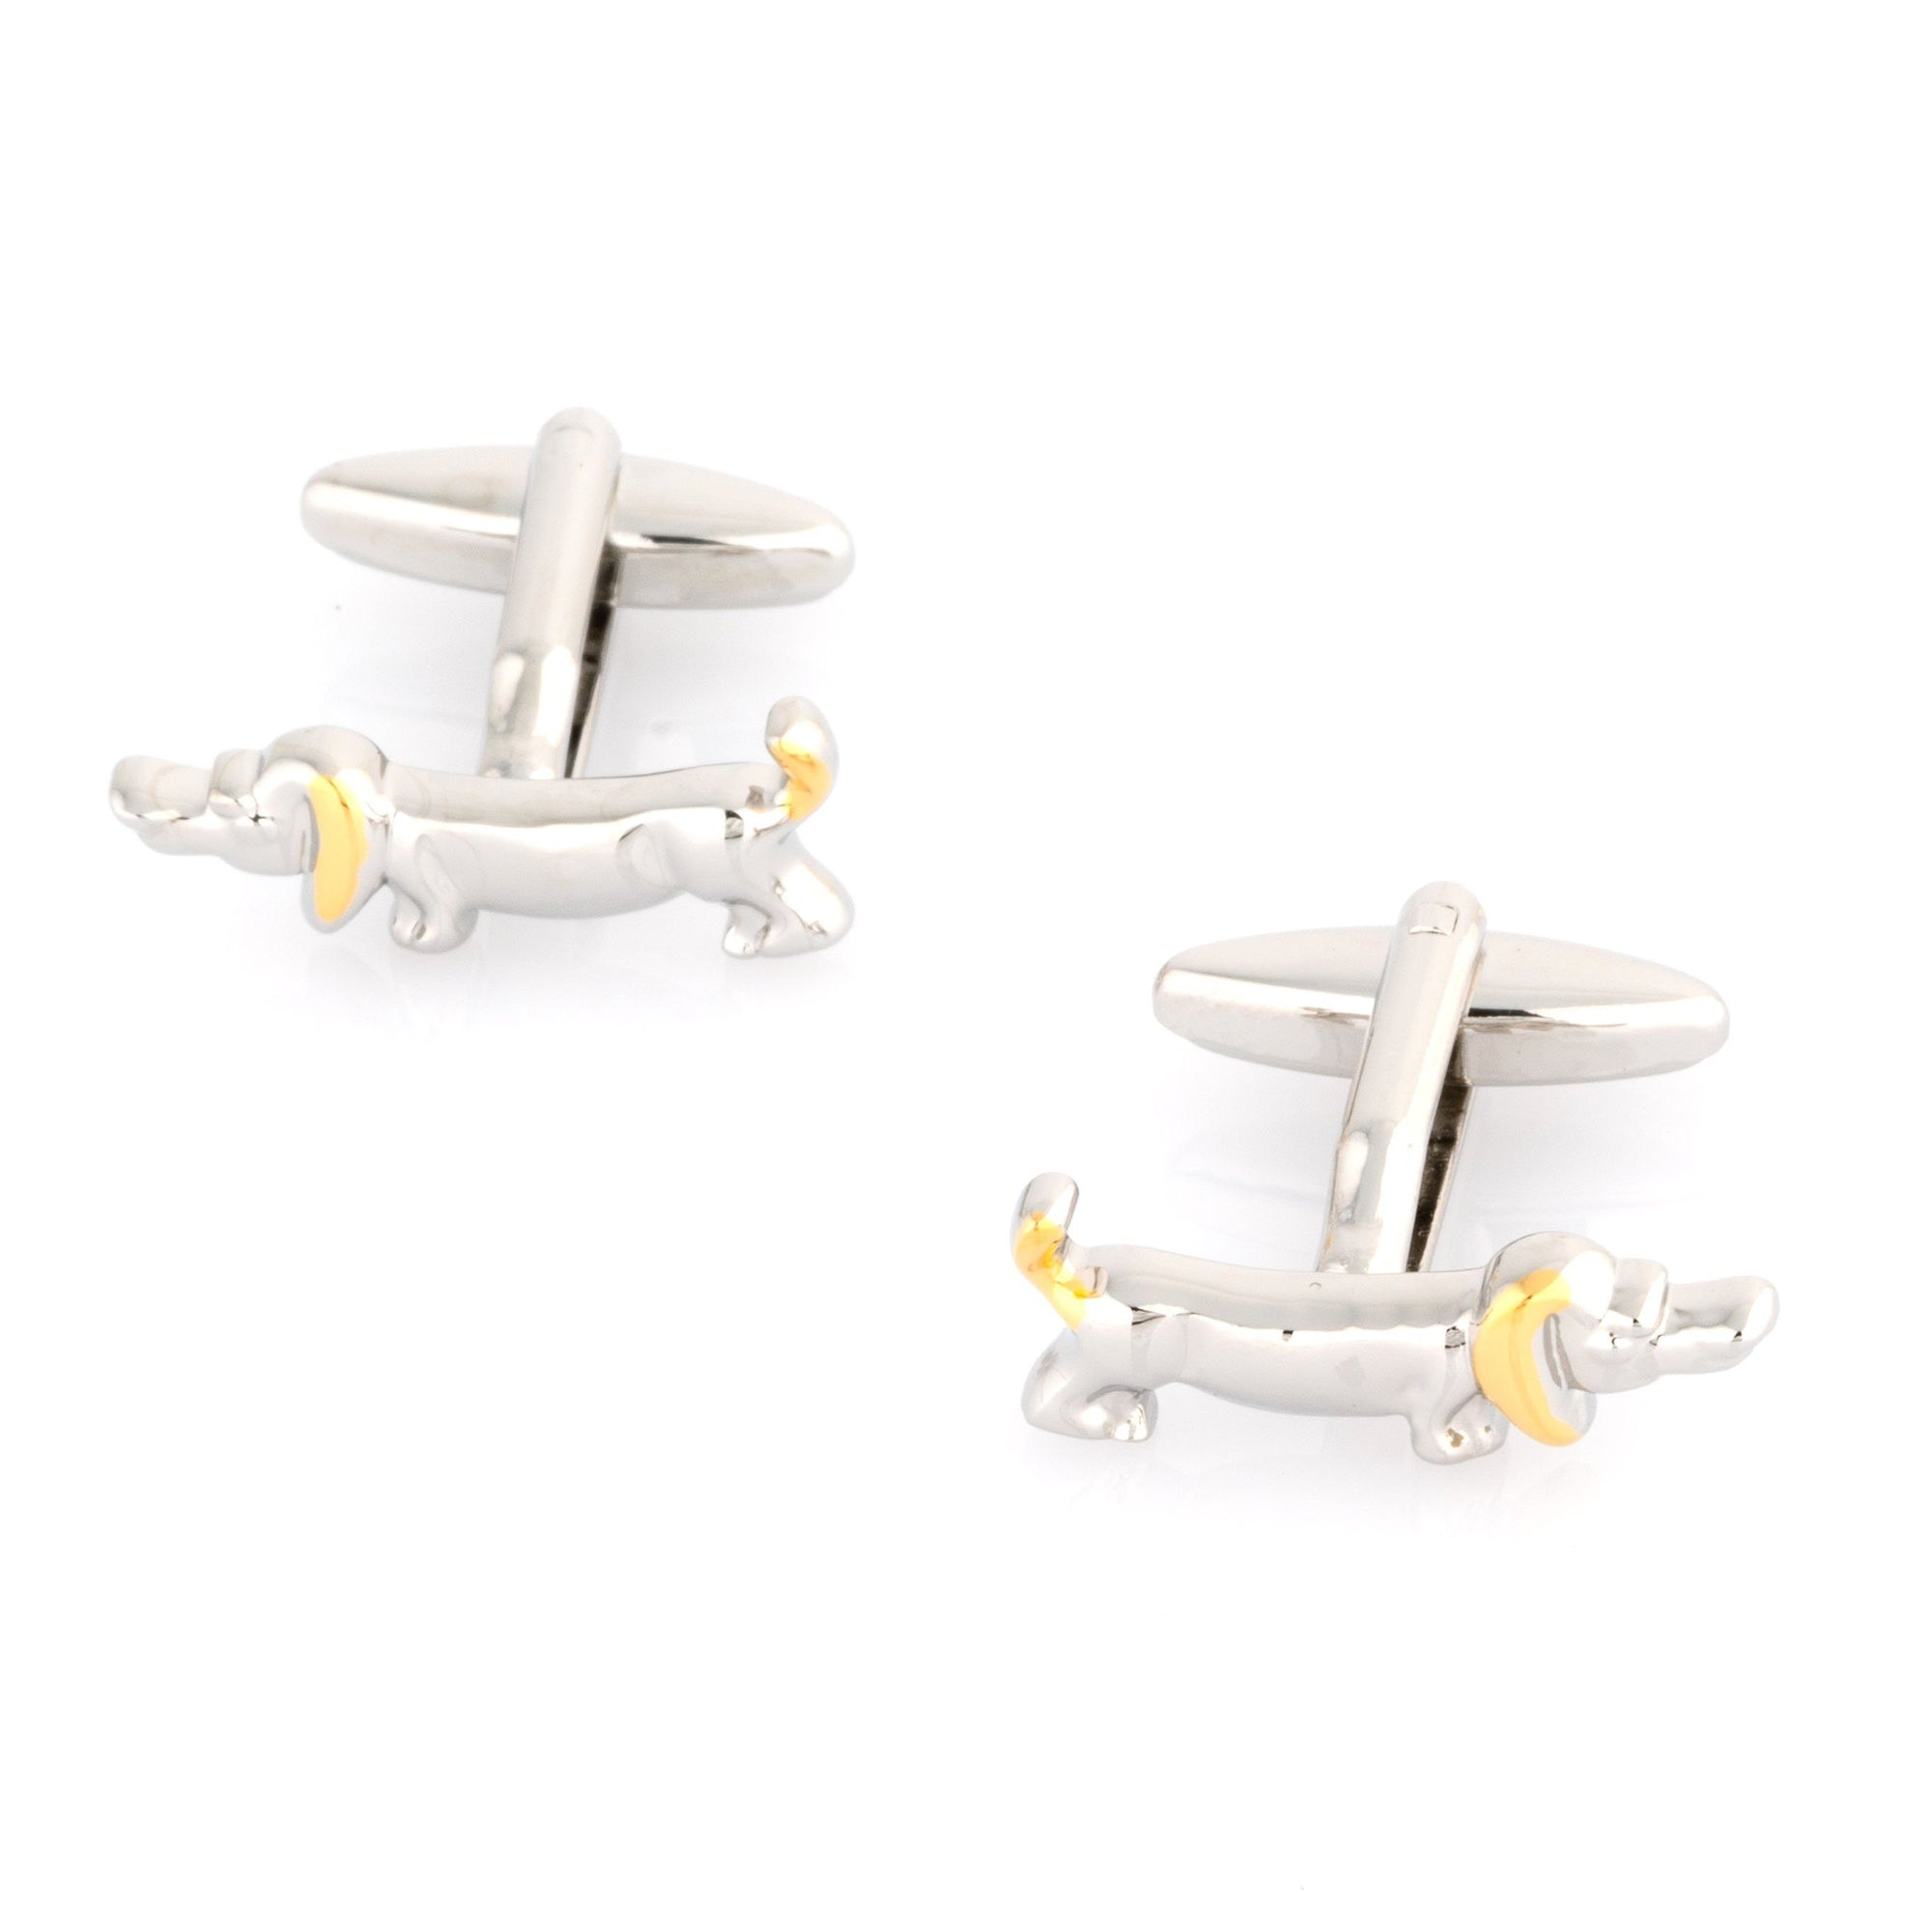 Sausage Dog Cufflinks in Gold and Silver, Novelty Cufflinks, Cuffed.com.au, CL7020, Animals, Clinks Australia